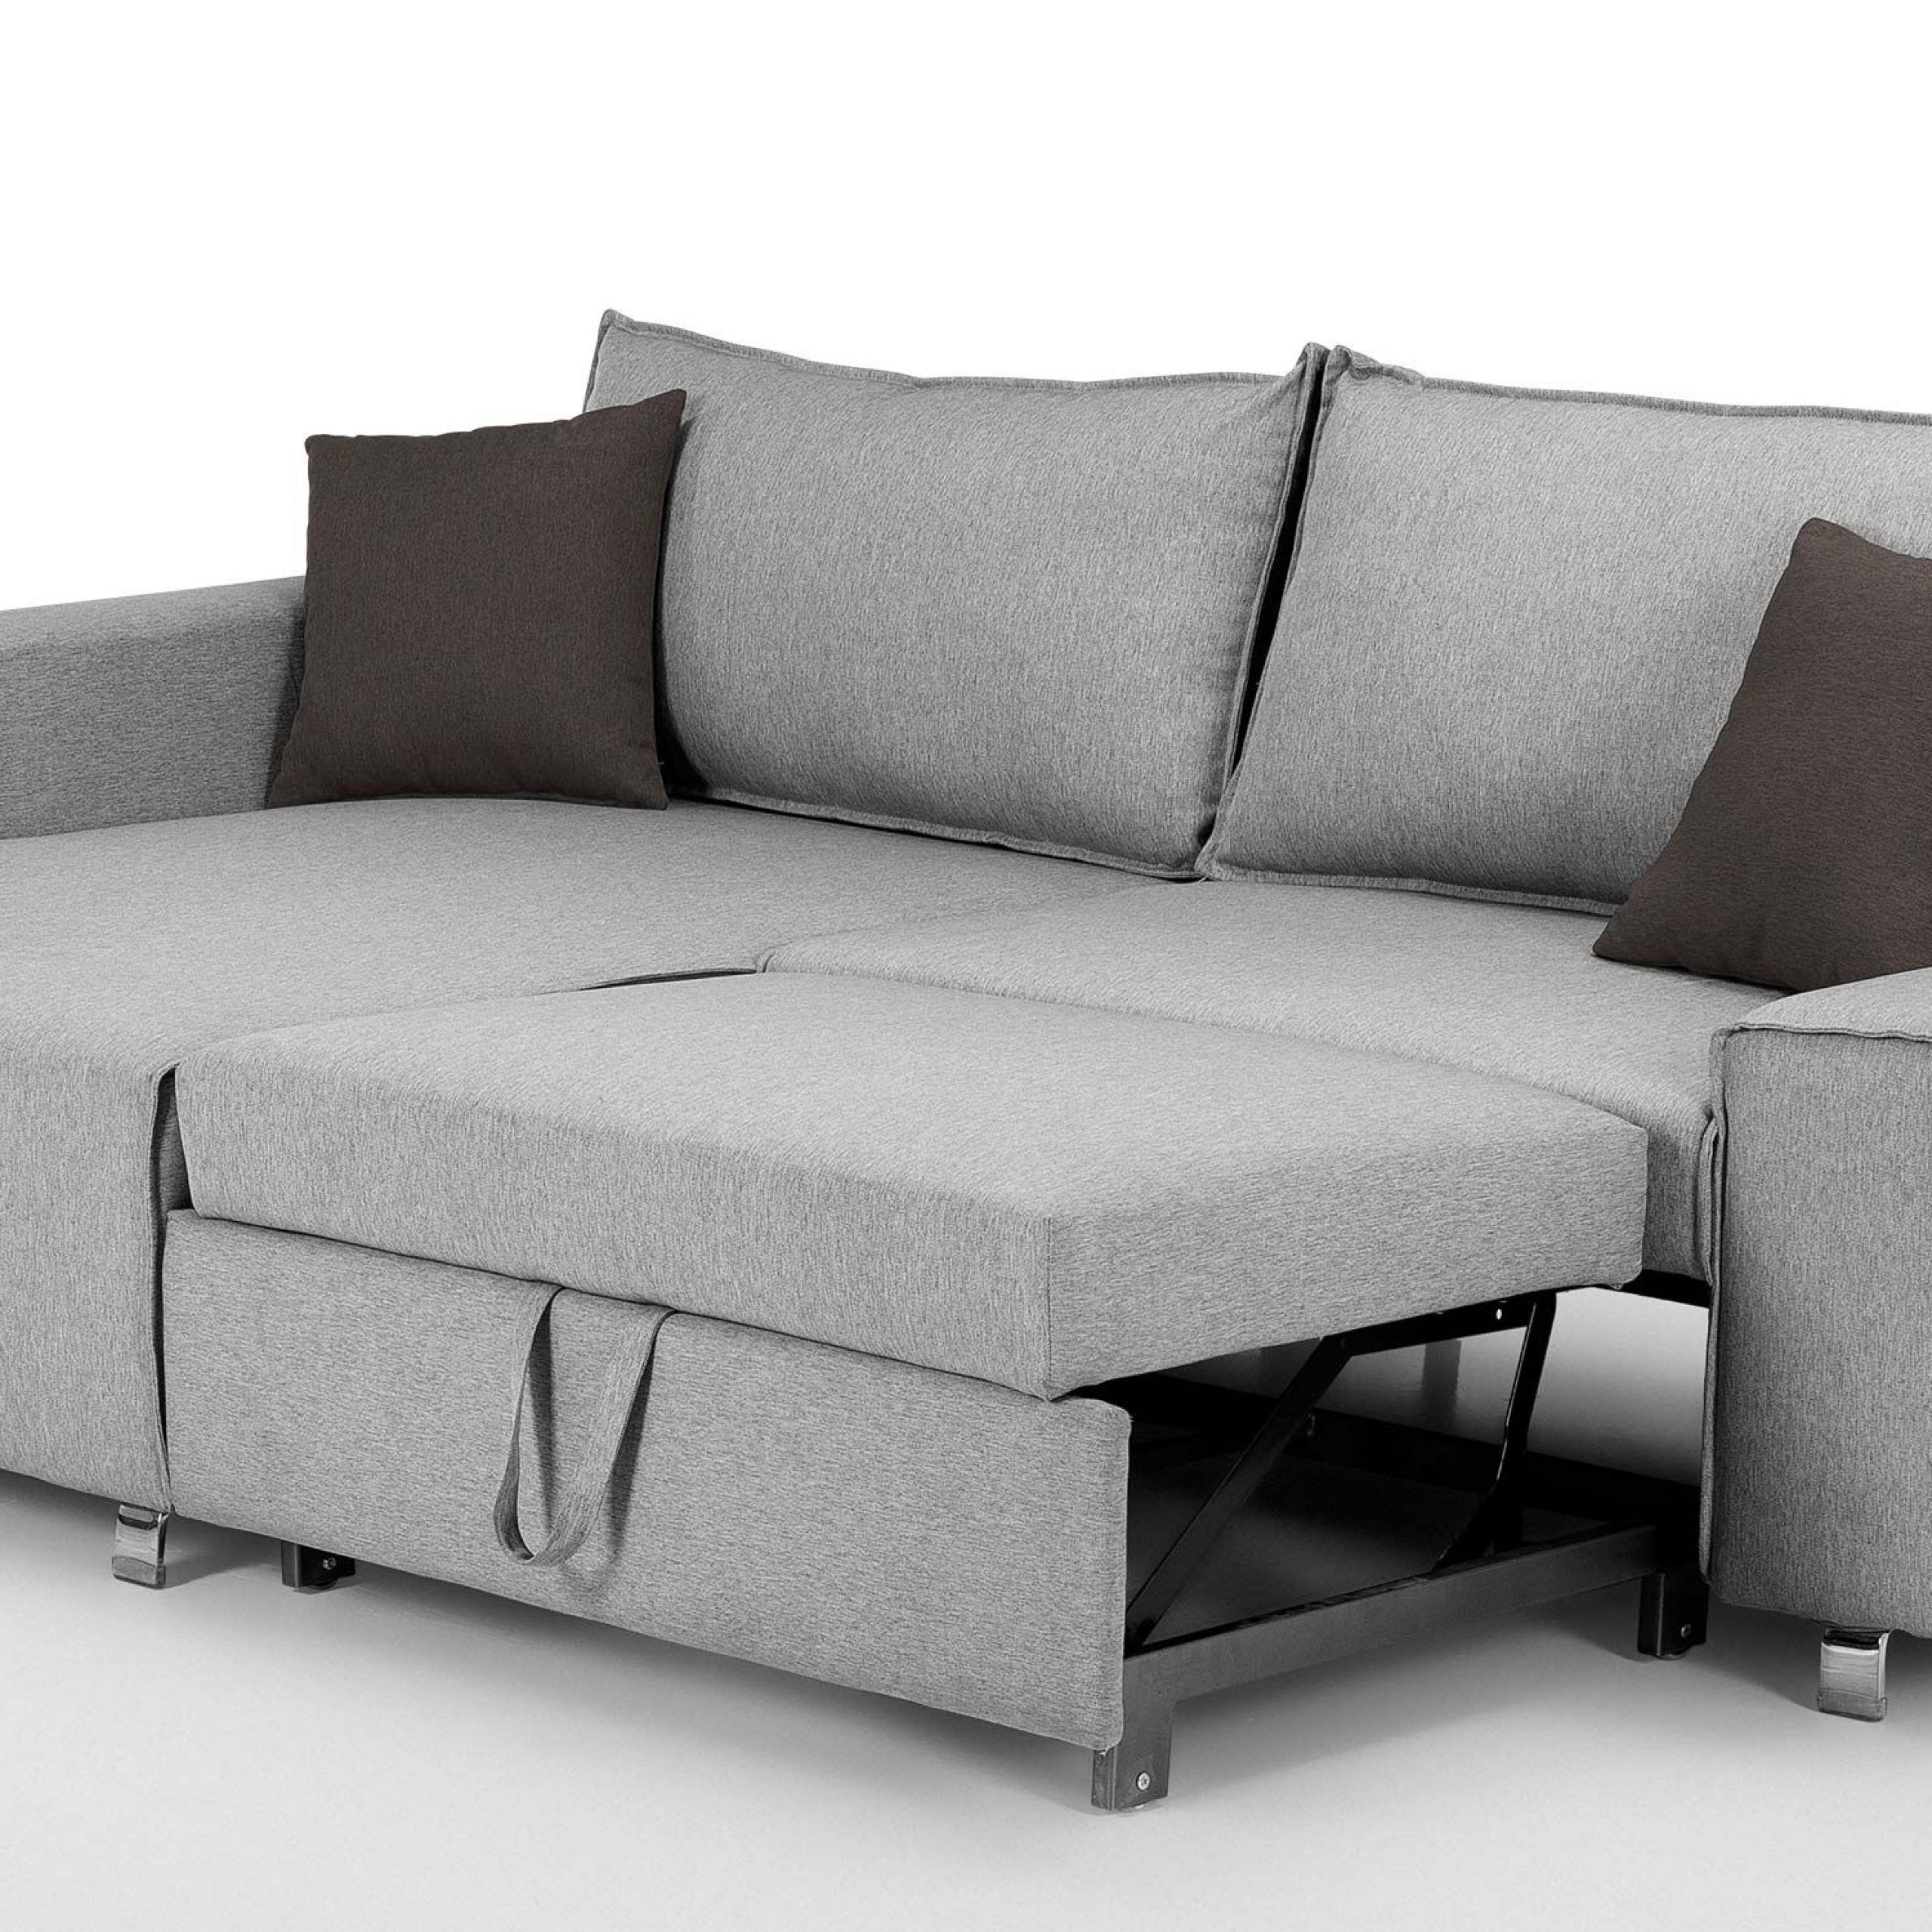 Dulce Right Sectional Sofas Twill Stone With Regard To Recent Mayne Right Hand Facing Corner Sofa Bed, Clear Grey Stone (View 12 of 20)